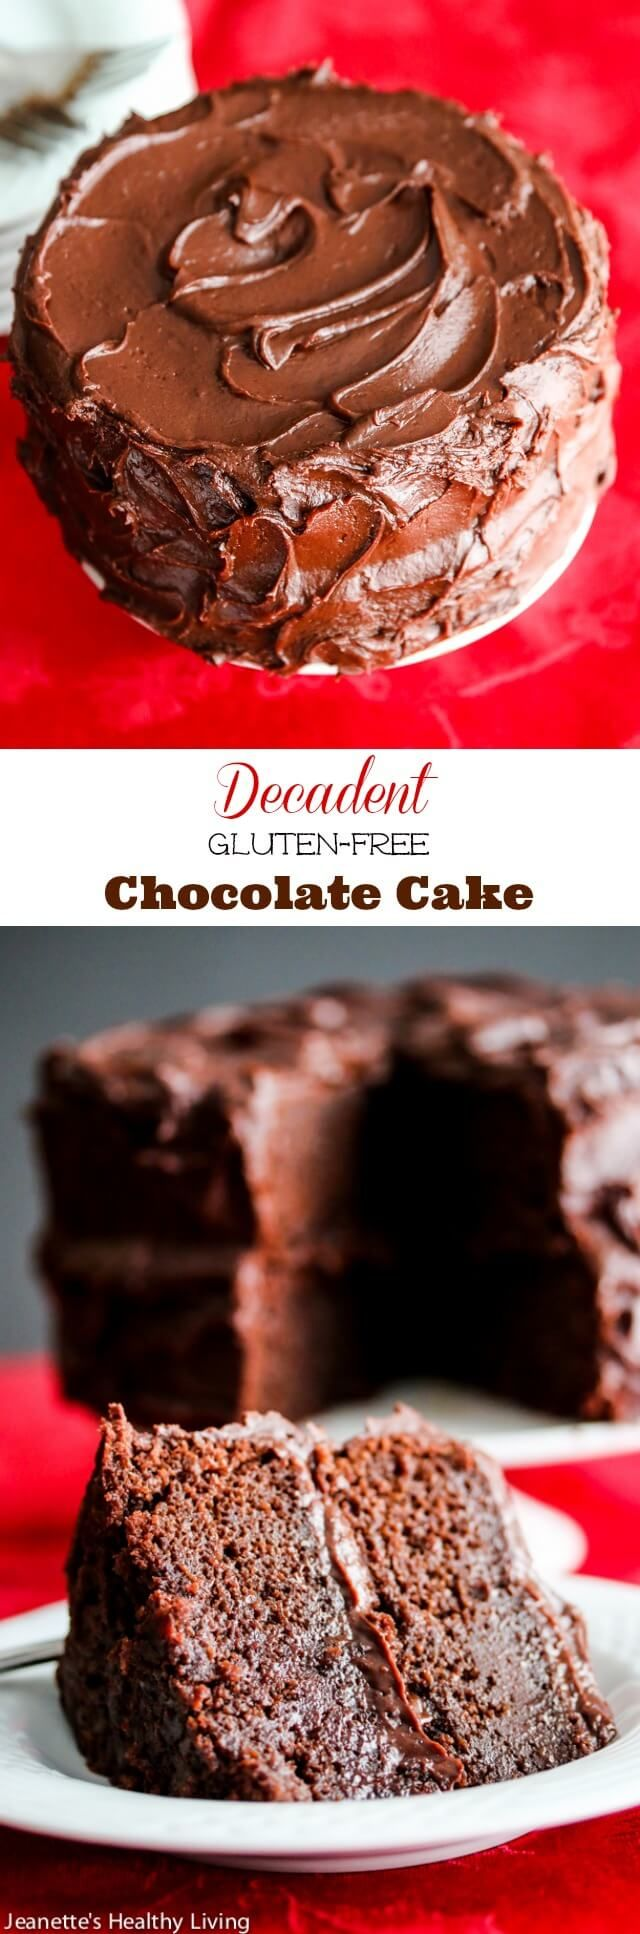 """Decadent Gluten-Free Chocolate Cake - so chocolatey and rich, no one will guess it's gluten-free. Perfect for the holiday dessert table. """"I used Pamela's Baking and Pancake Mix in the recipe and I can honestly say there was no grainy texture, just pure fudgyness!"""""""